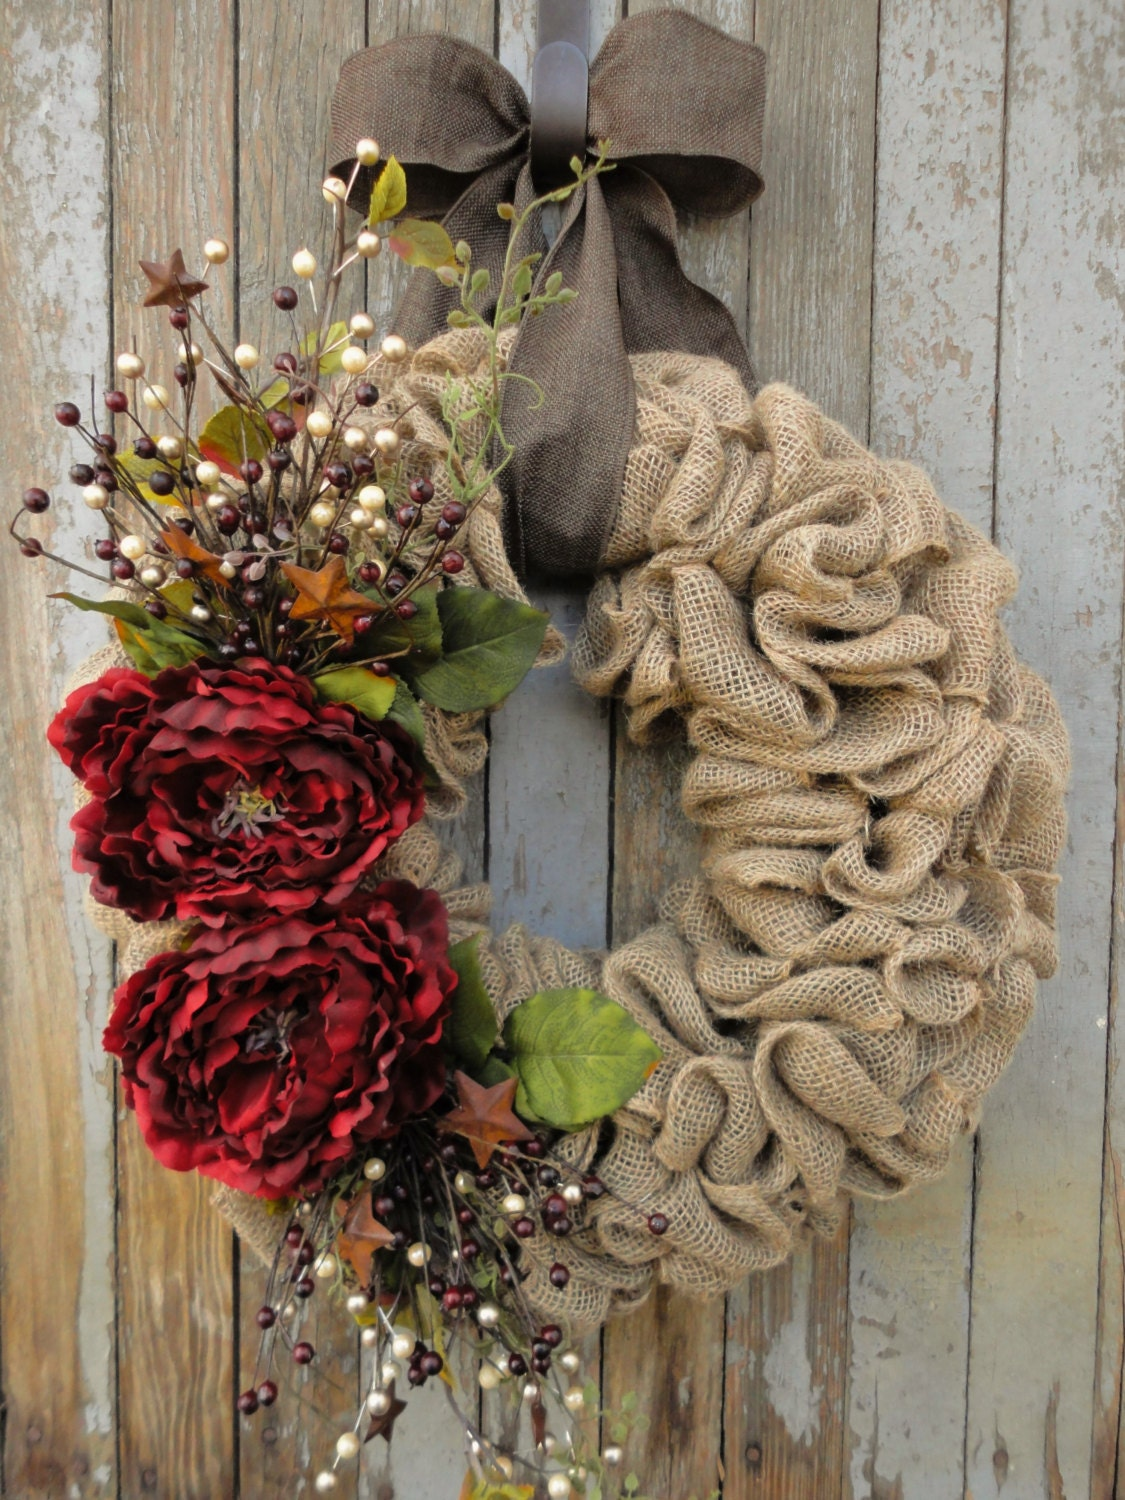 Red Peony Christmas Wreath Christmas Burlap Wreathholiday: burlap xmas wreath